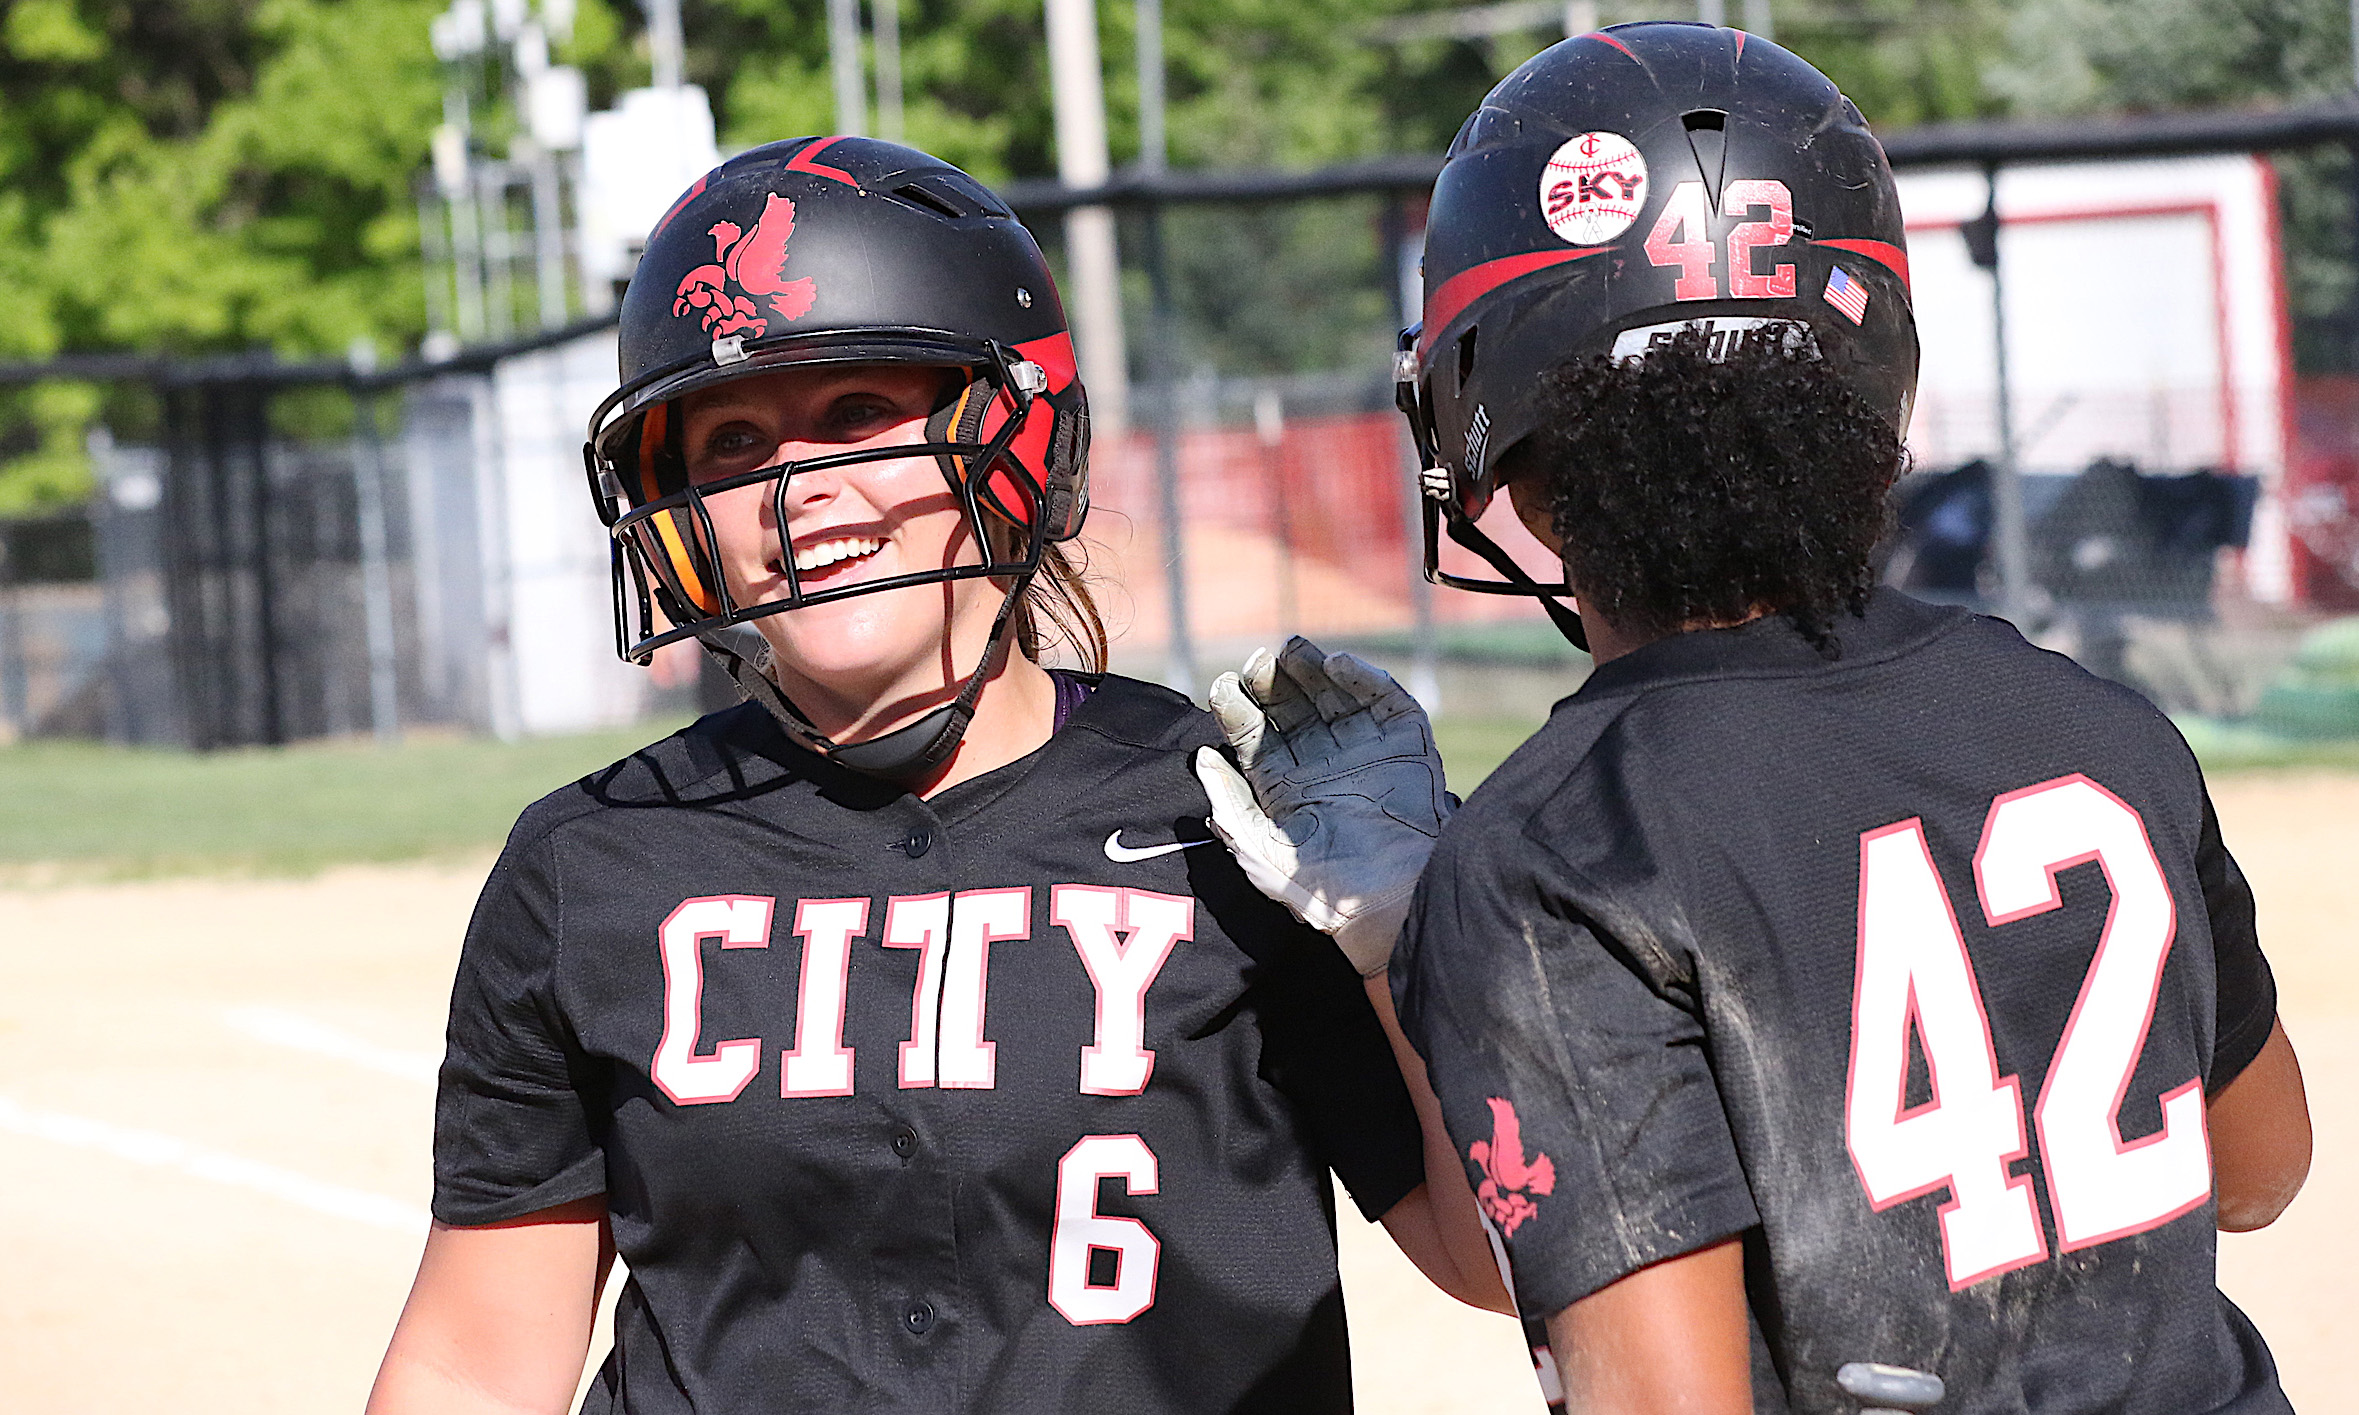 West at City Softball 22